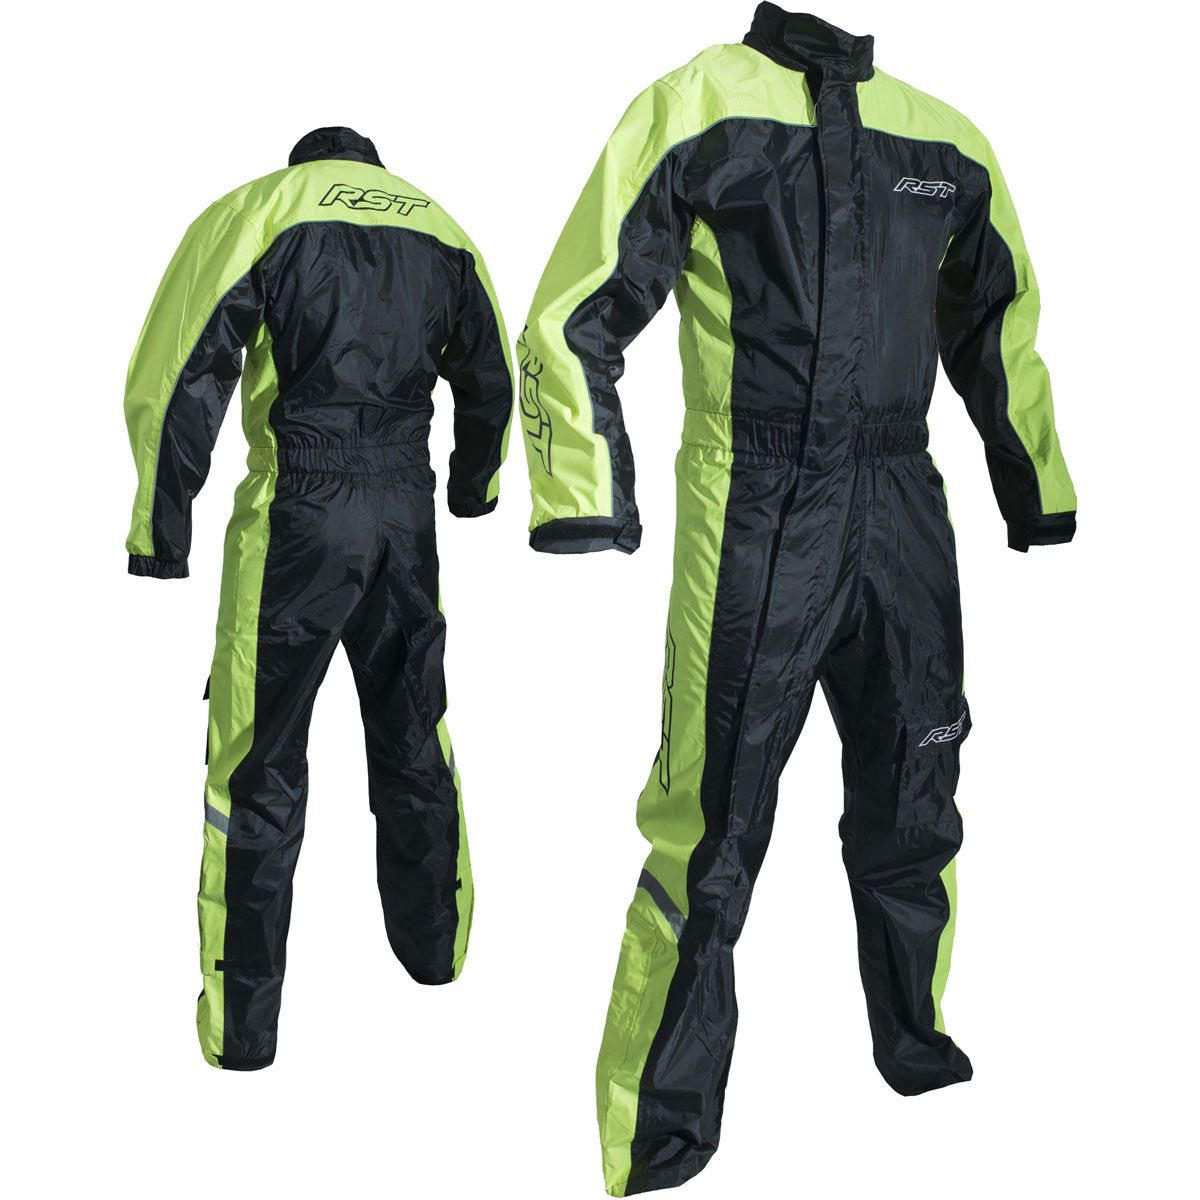 RST Waterproof Over Suit Fluo Yellow